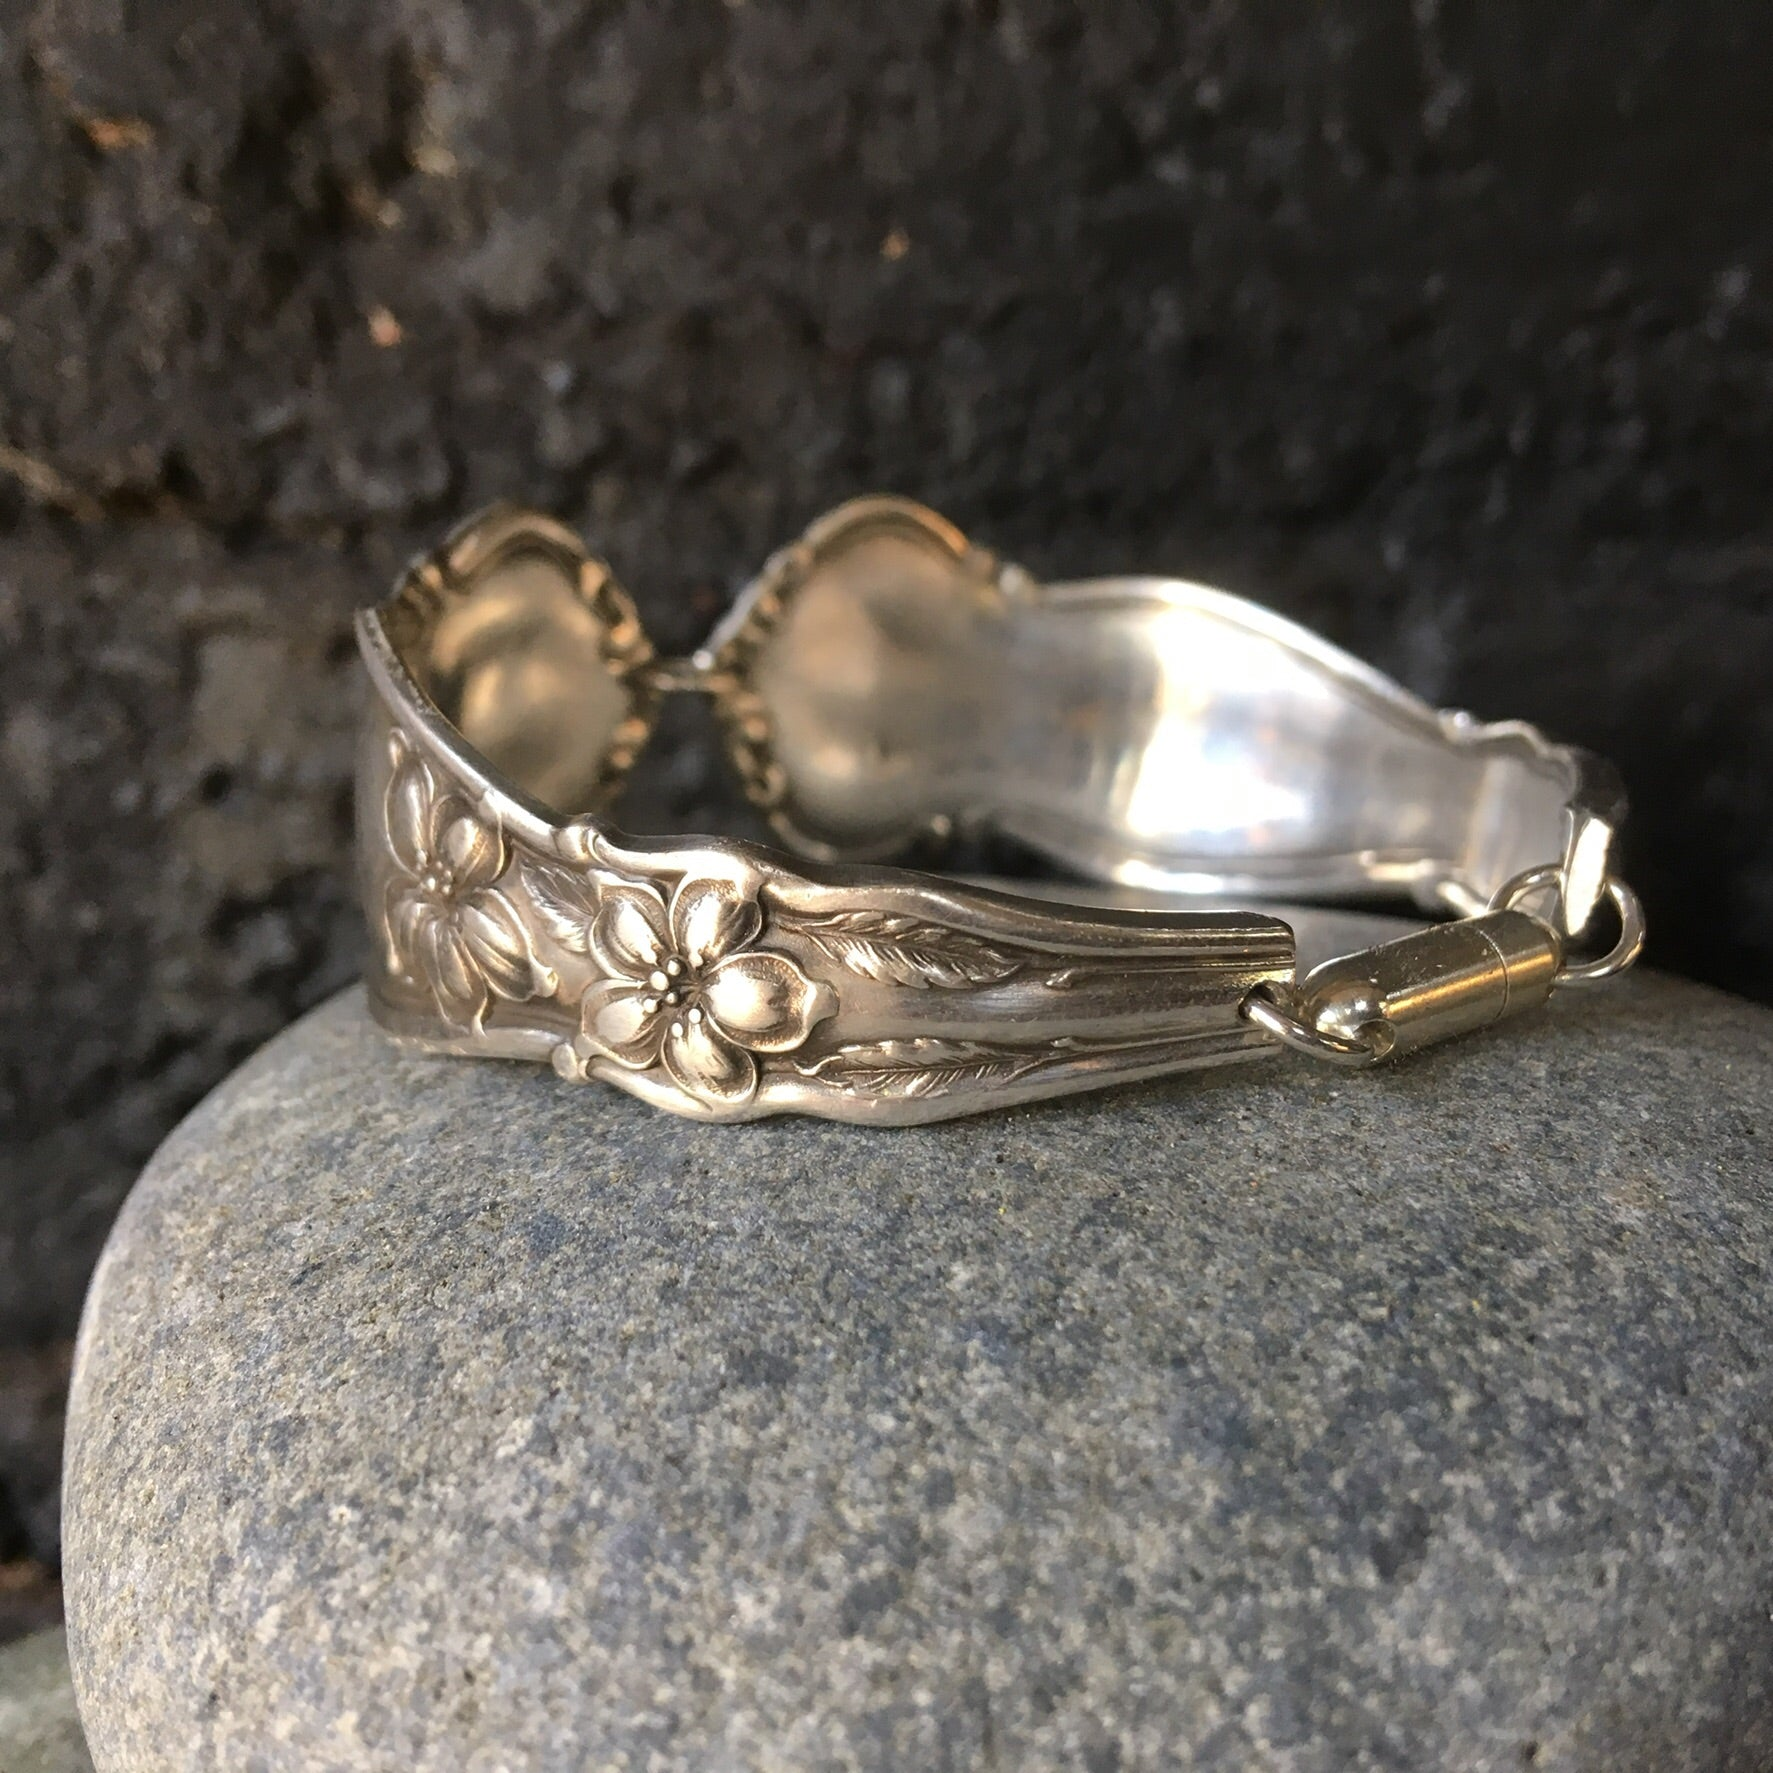 Bracelet handcrafted from antique spoons